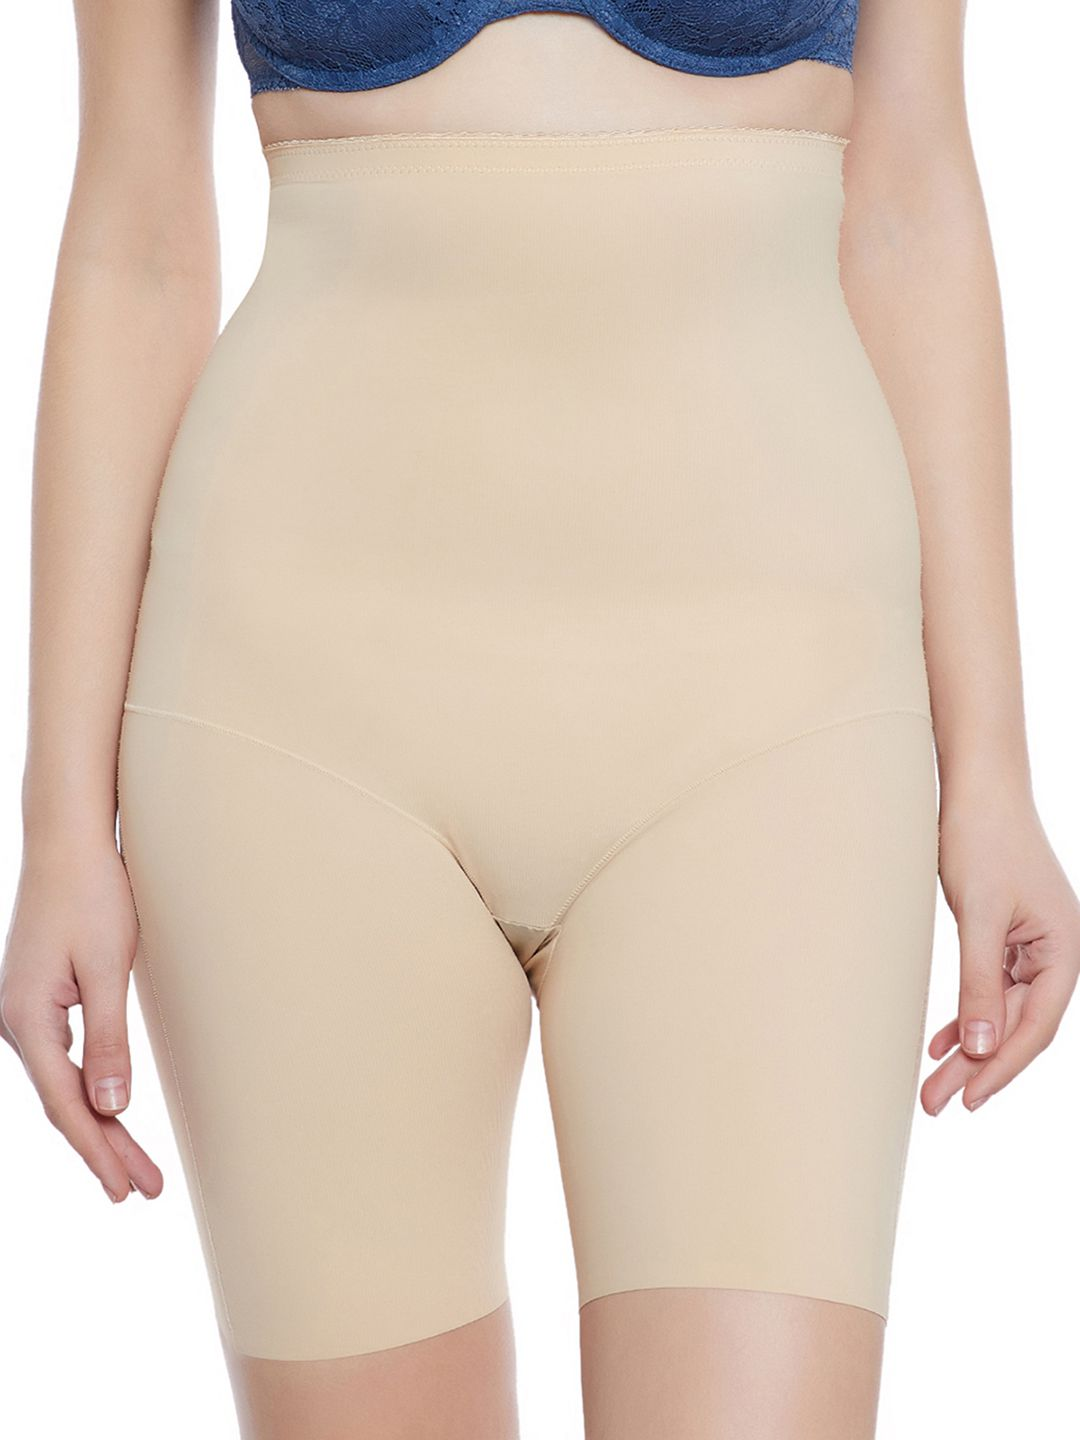 aa37ca5a3dd4 Buy Clovia Shapewear Dress Shapewear Online at Best Prices in India -  Snapdeal